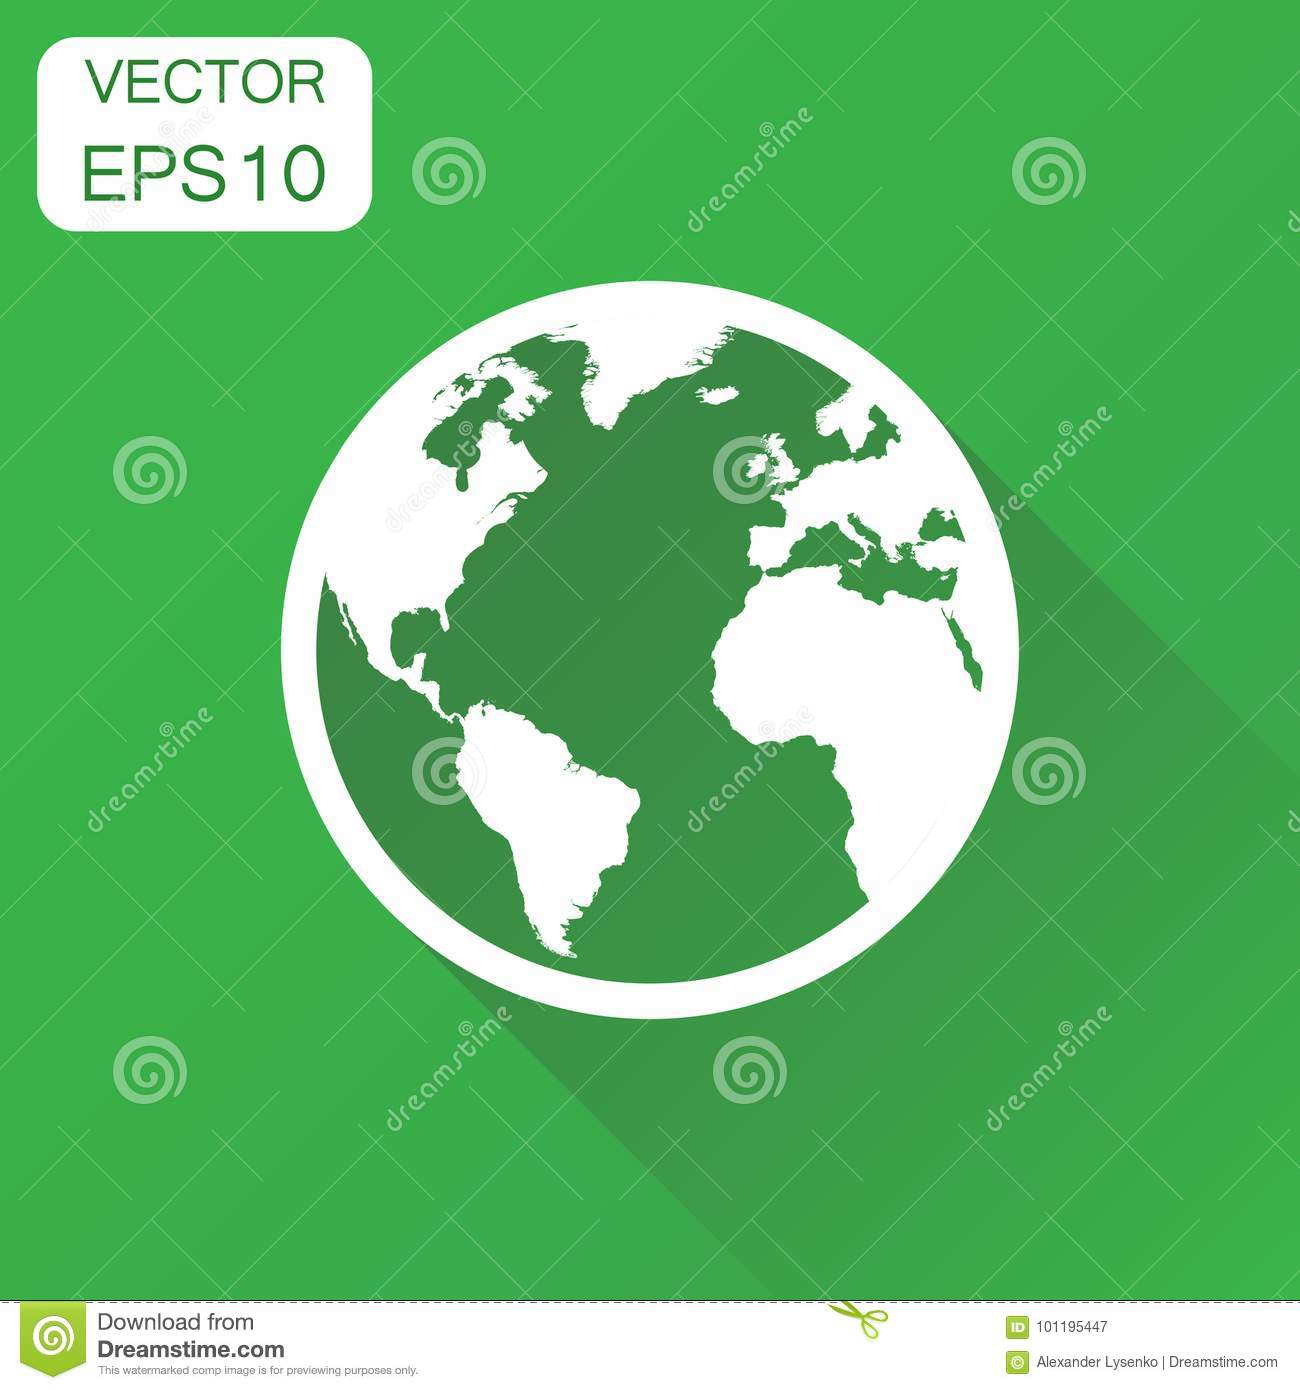 Globe world map icon business concept round earth pictogram ve download globe world map icon business concept round earth pictogram ve stock vector gumiabroncs Image collections